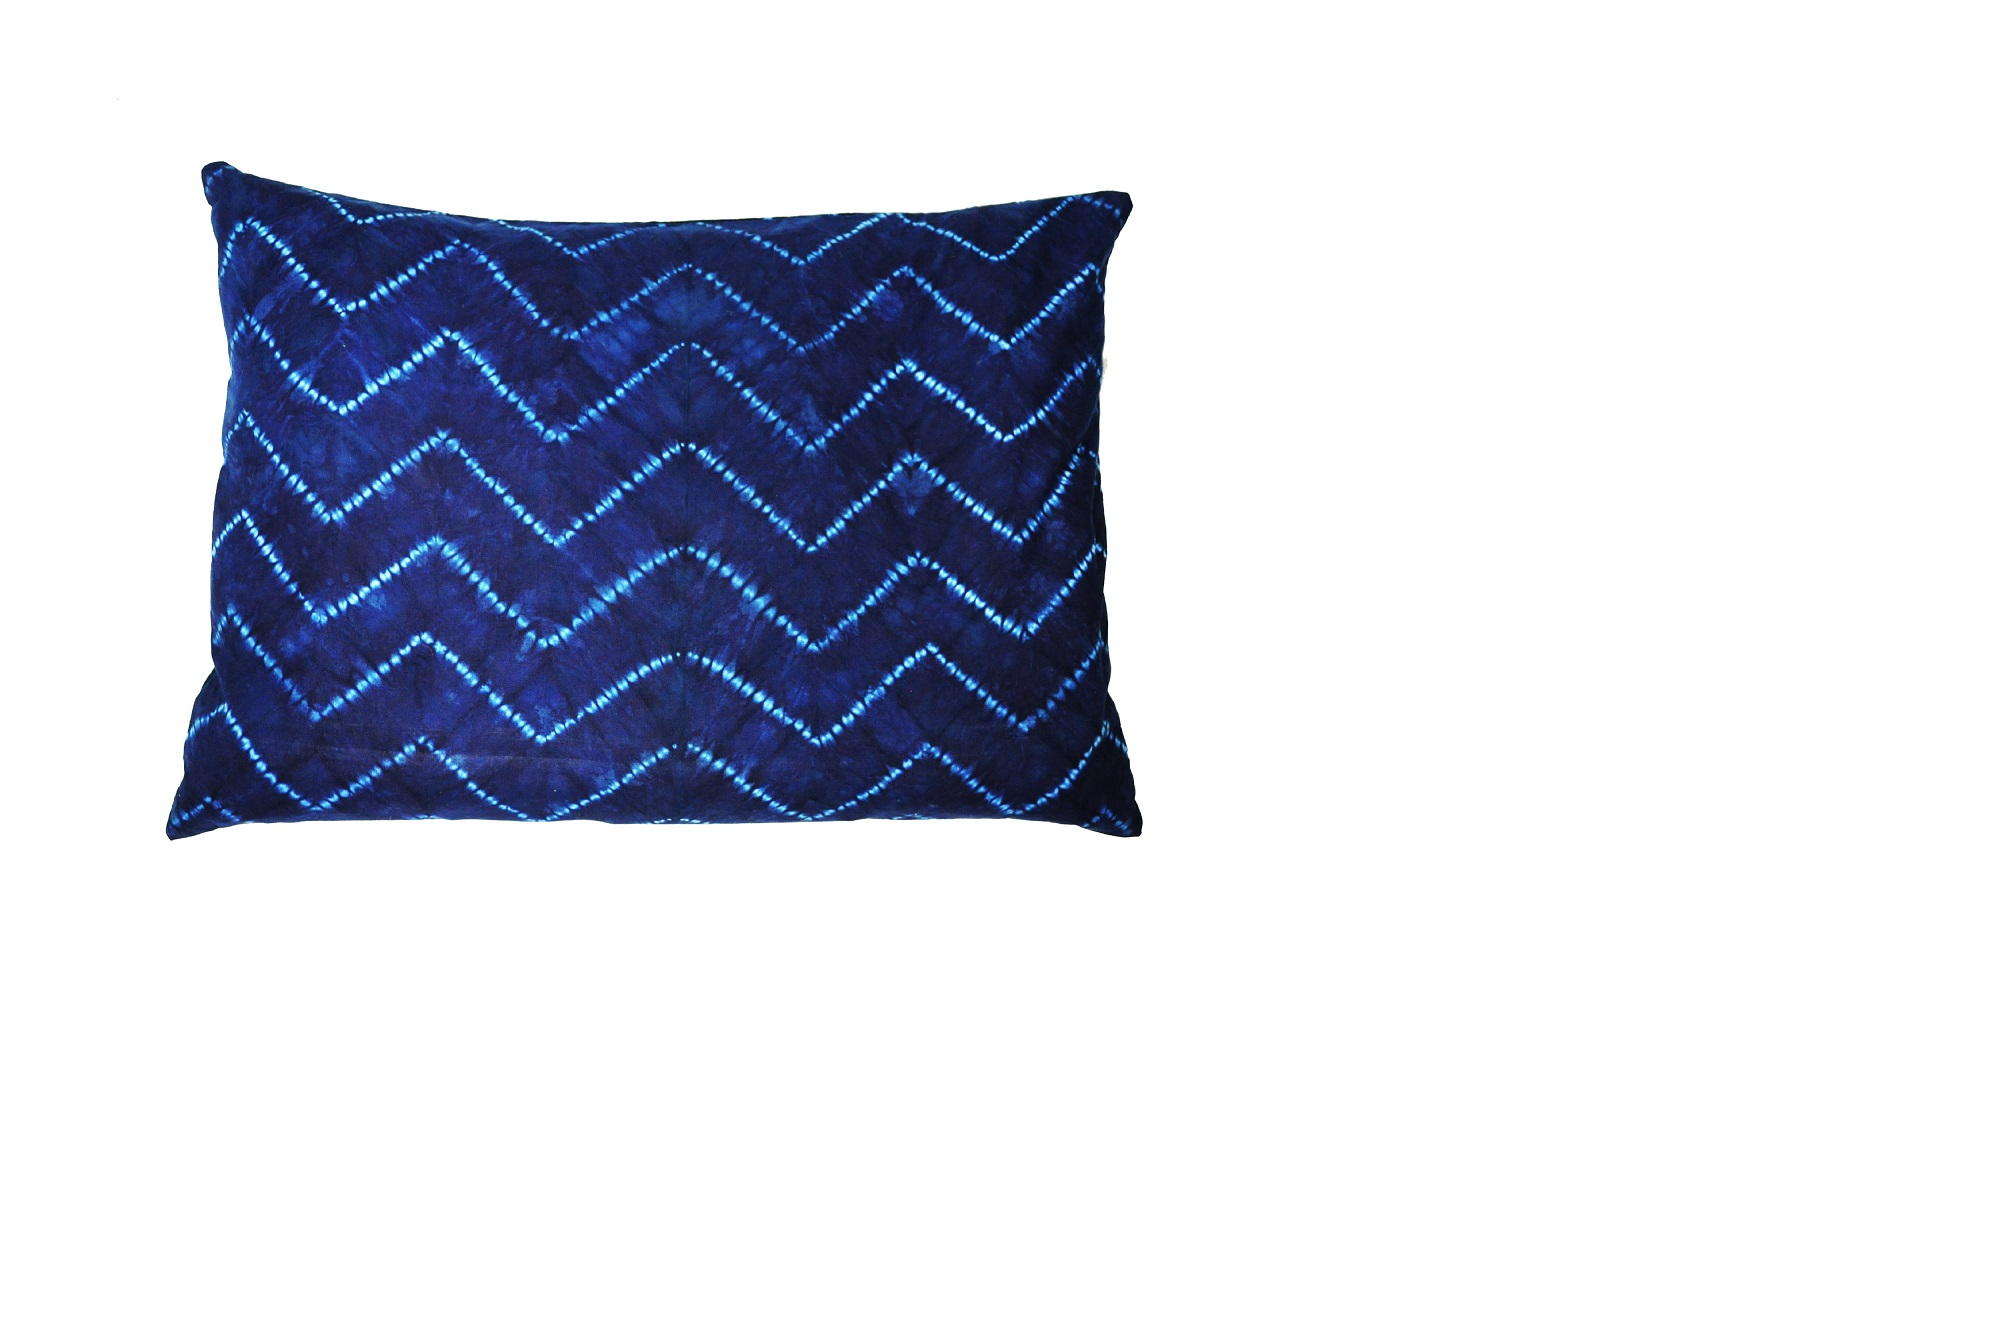 CALYZ GGPCAL001 INDIGO CHEVRON PILLOW HAND MADE AND EASY